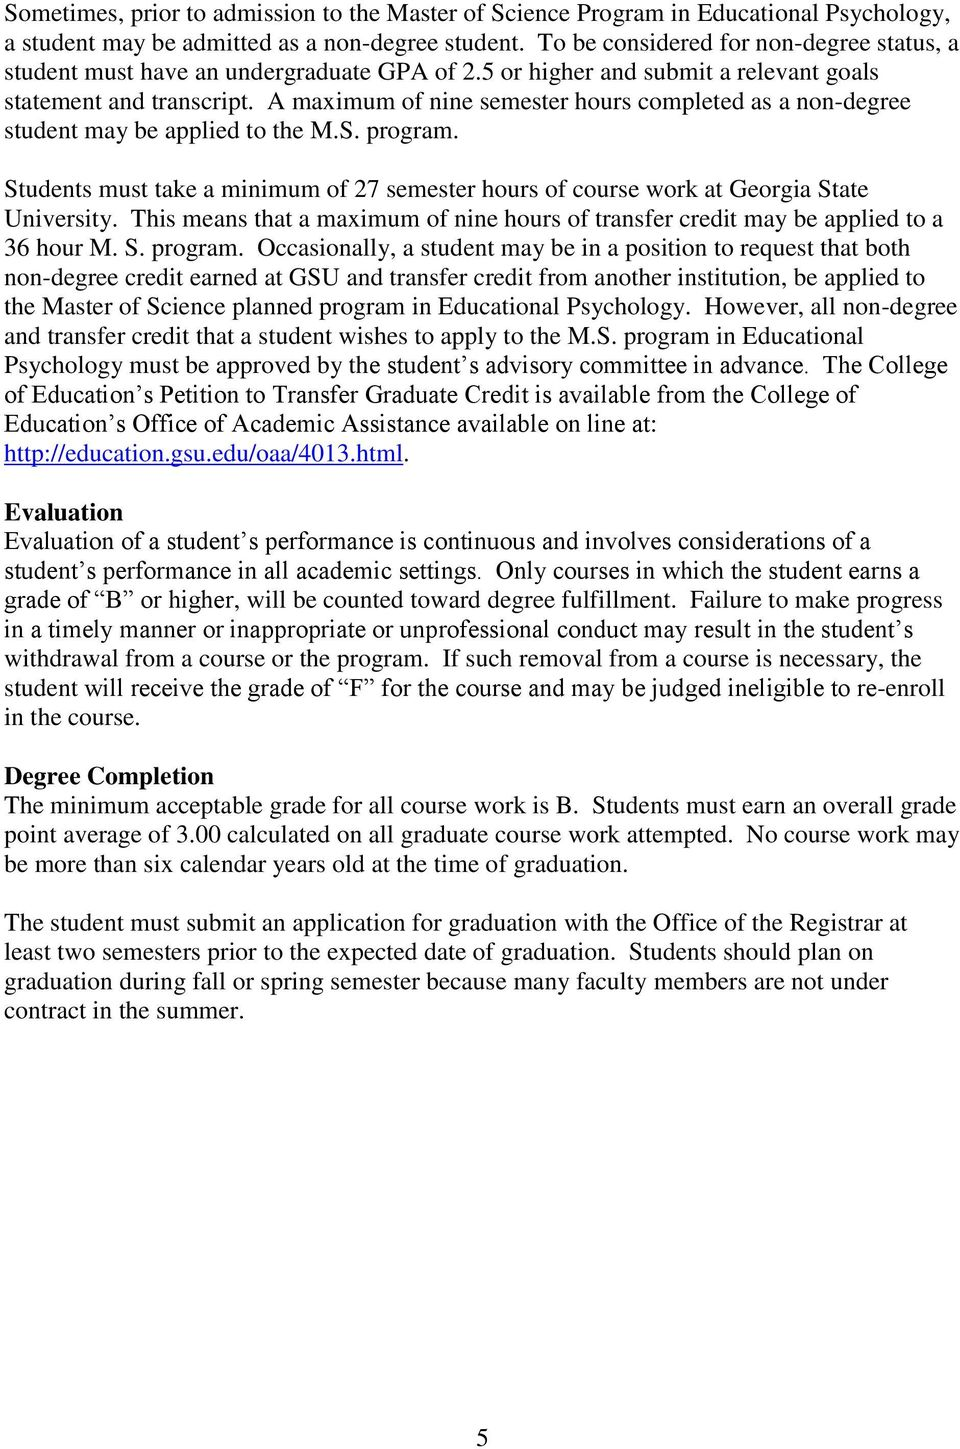 A maximum of nine semester hours completed as a non-degree student may be applied to the M.S. program. Students must take a minimum of 27 semester hours of course work at Georgia State University.